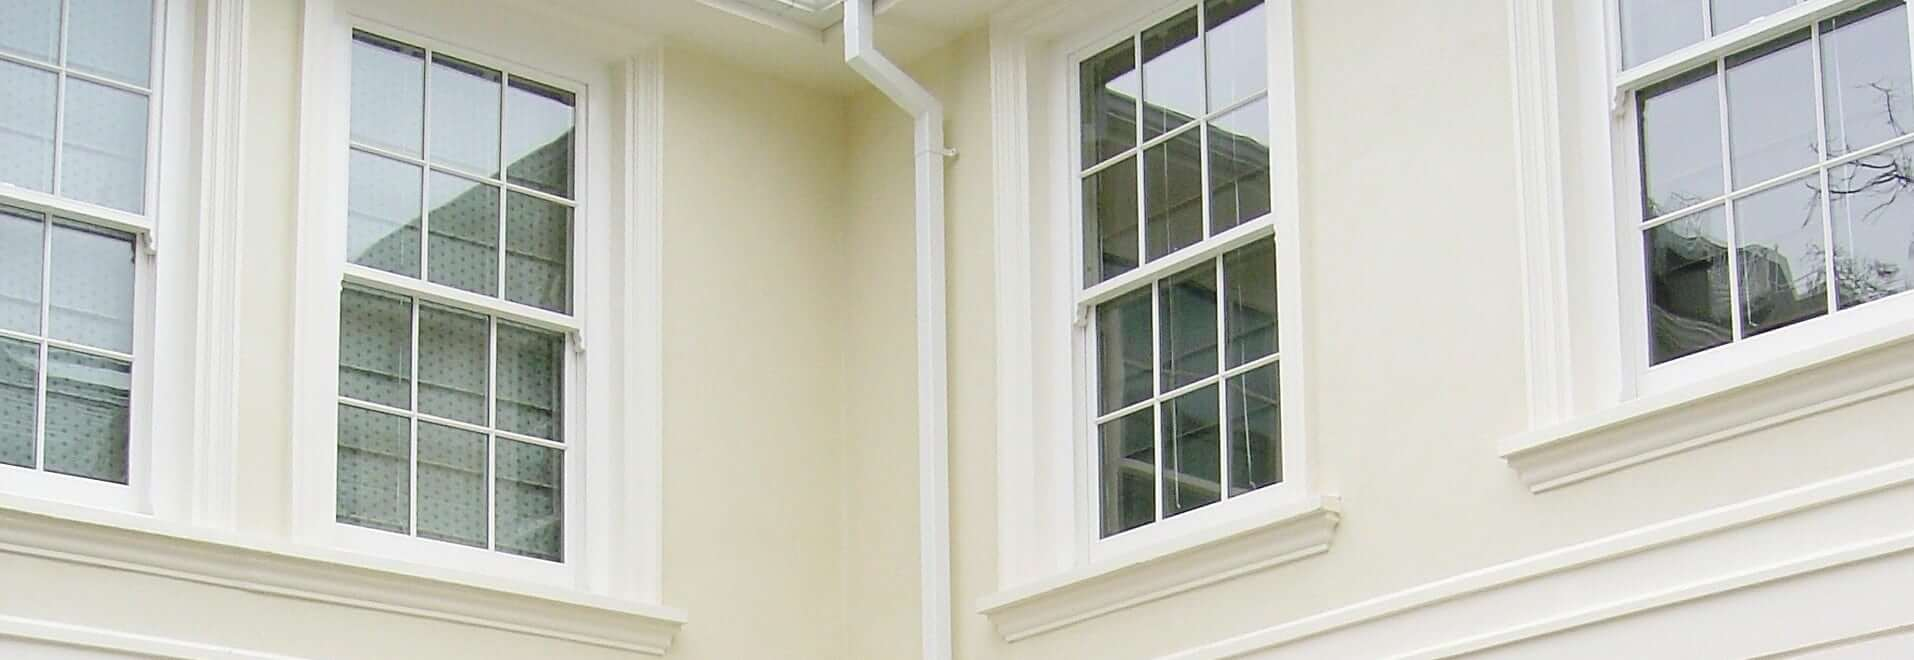 Why the depth of the sash window frame is so important - Timbawood